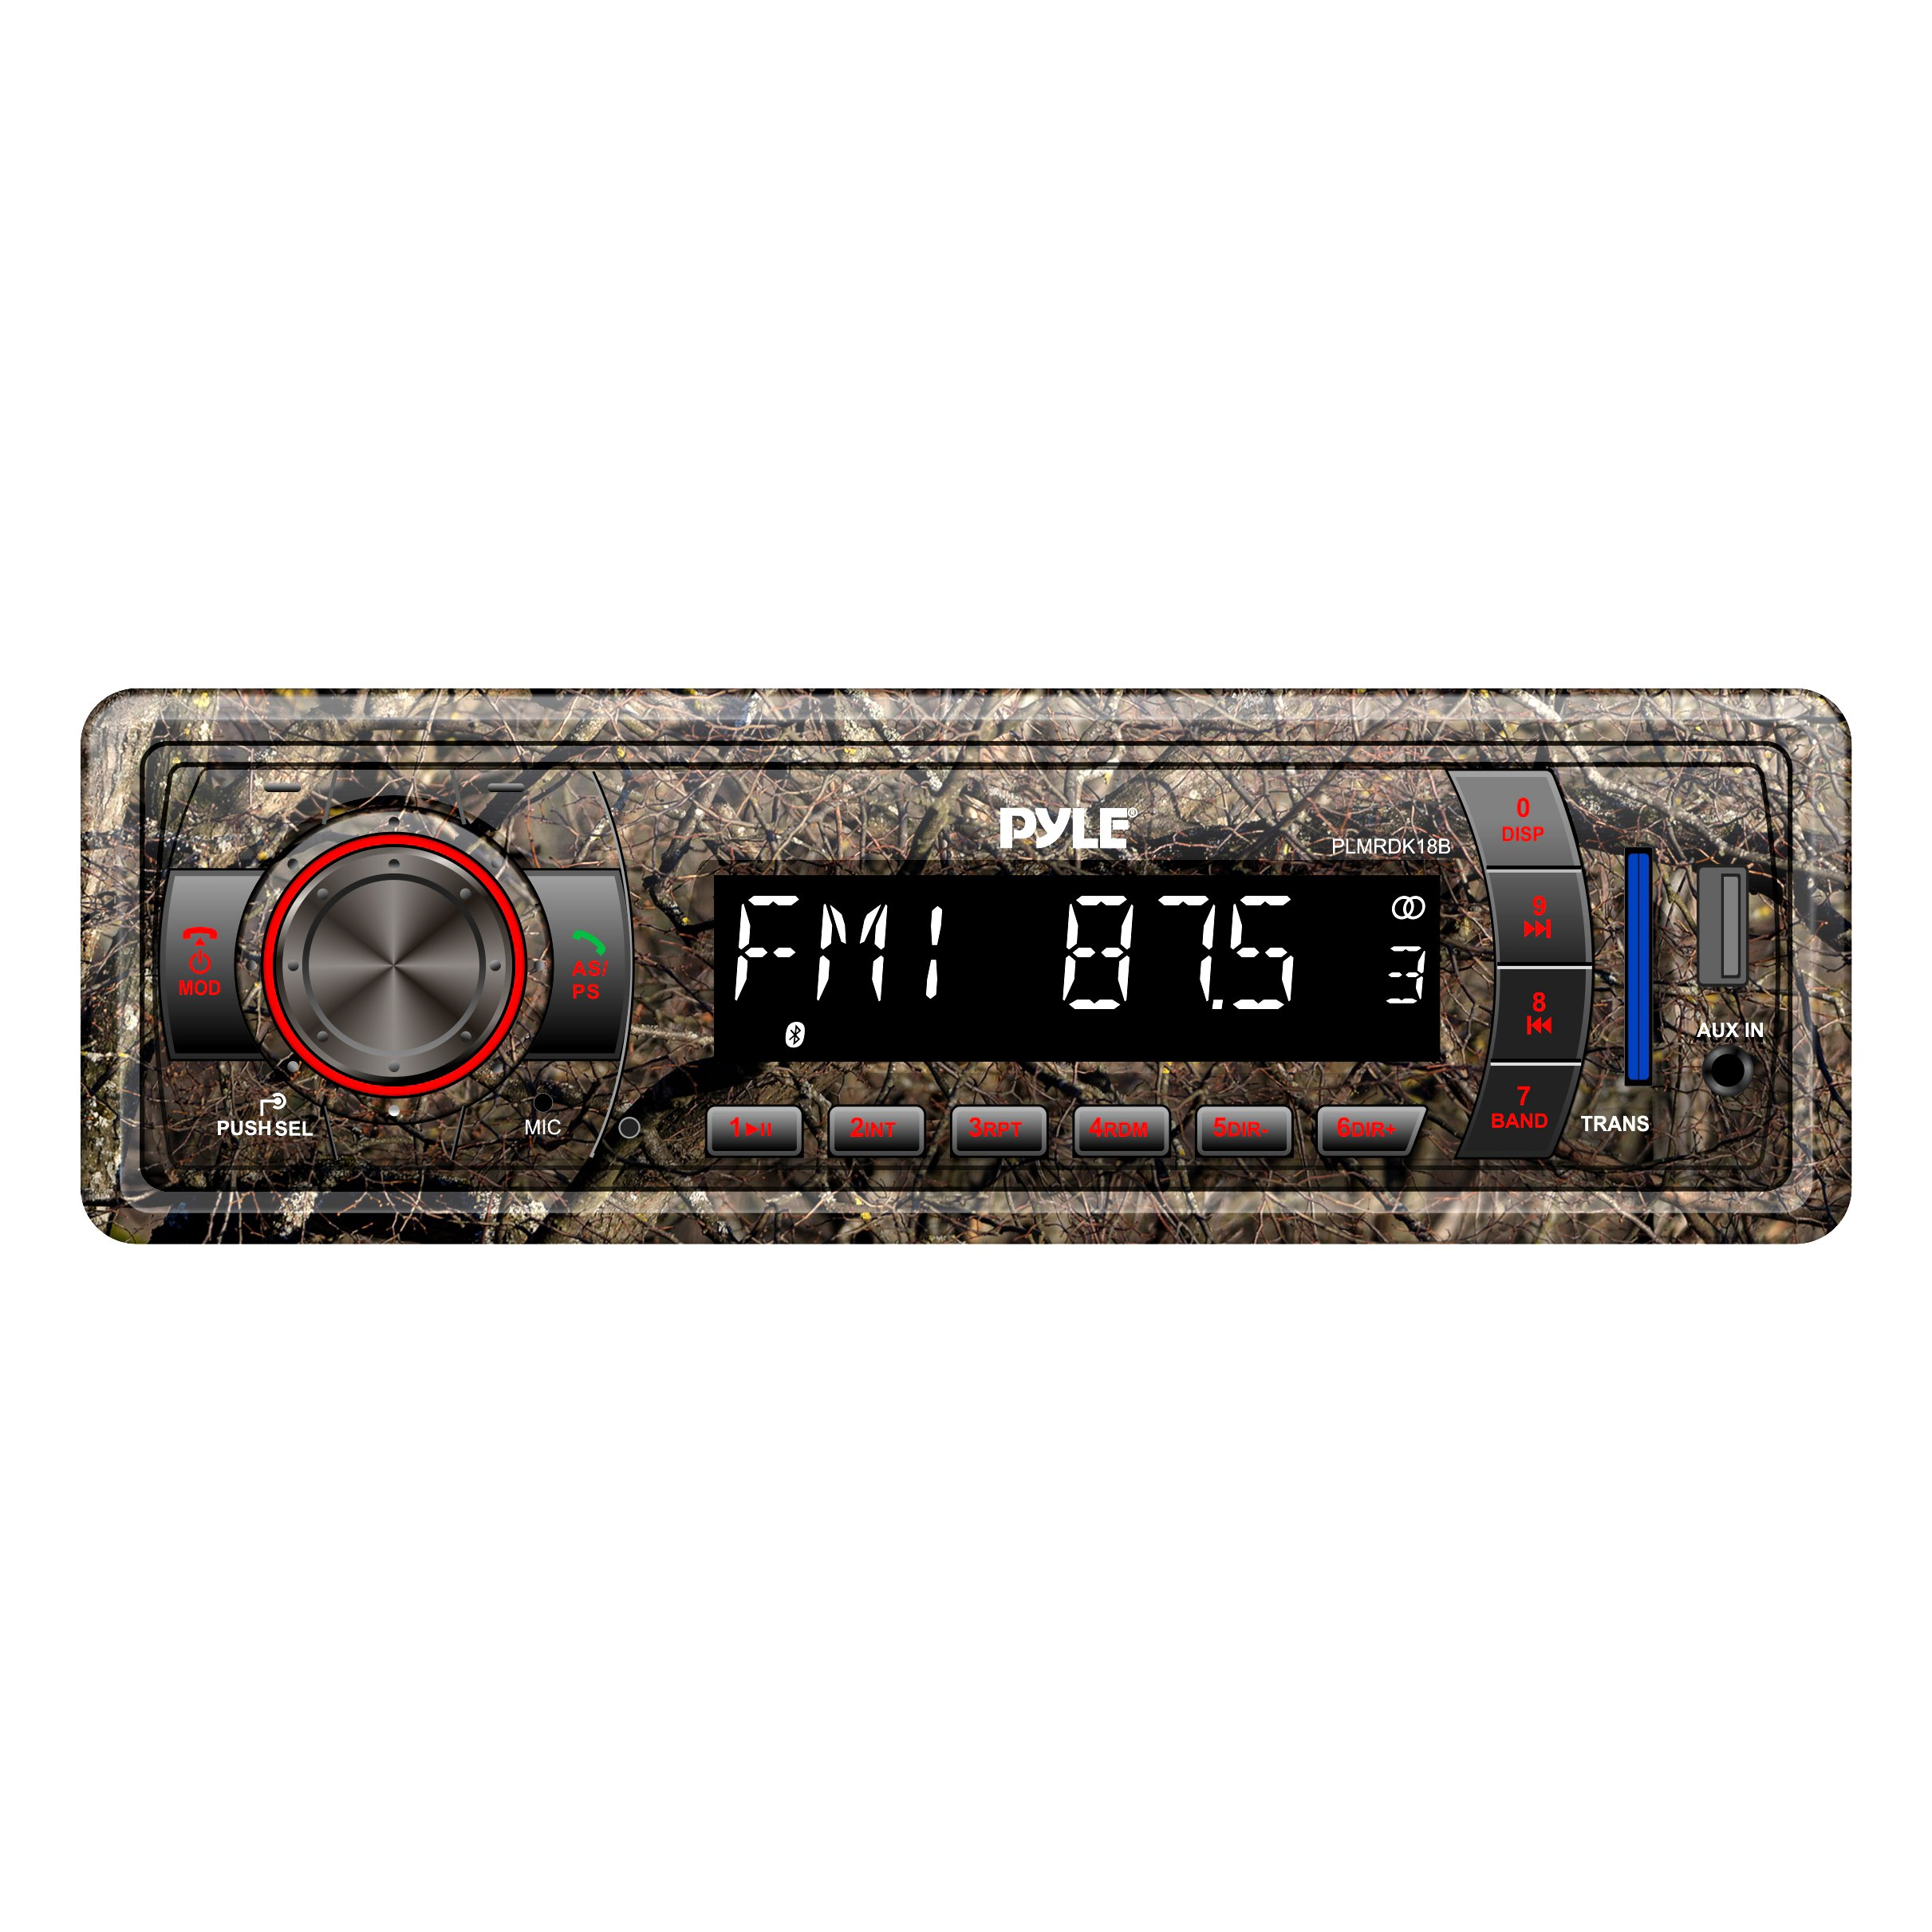 Camo Stereo Marine Headunit Receiver - 12v Camo Style Single DIN Digital Boat in Dash Radio System with Bluetooth, Built in Mic, MP3, USB, SD, AUX, AM FM Radio - Power Wiring Harness - Pyle PLMRDK18B